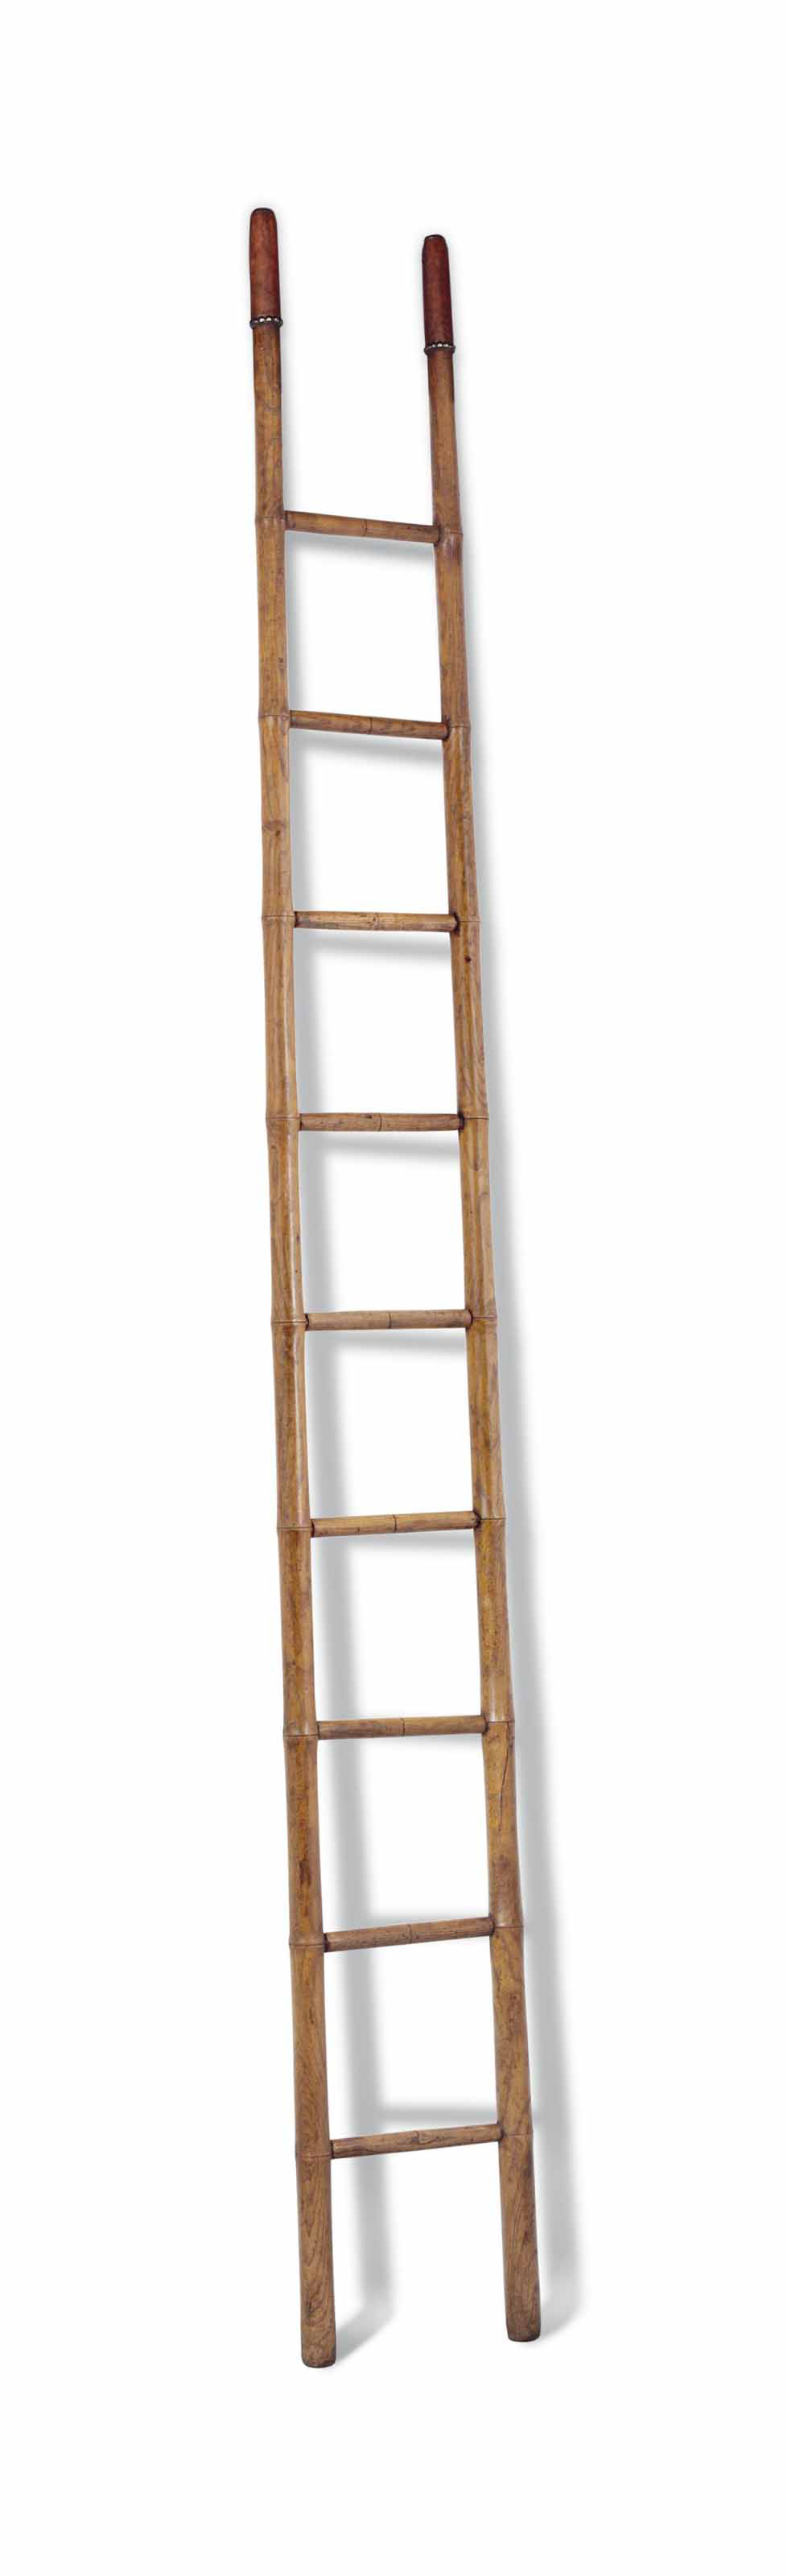 A FRENCH ASH LIBRARY LADDER